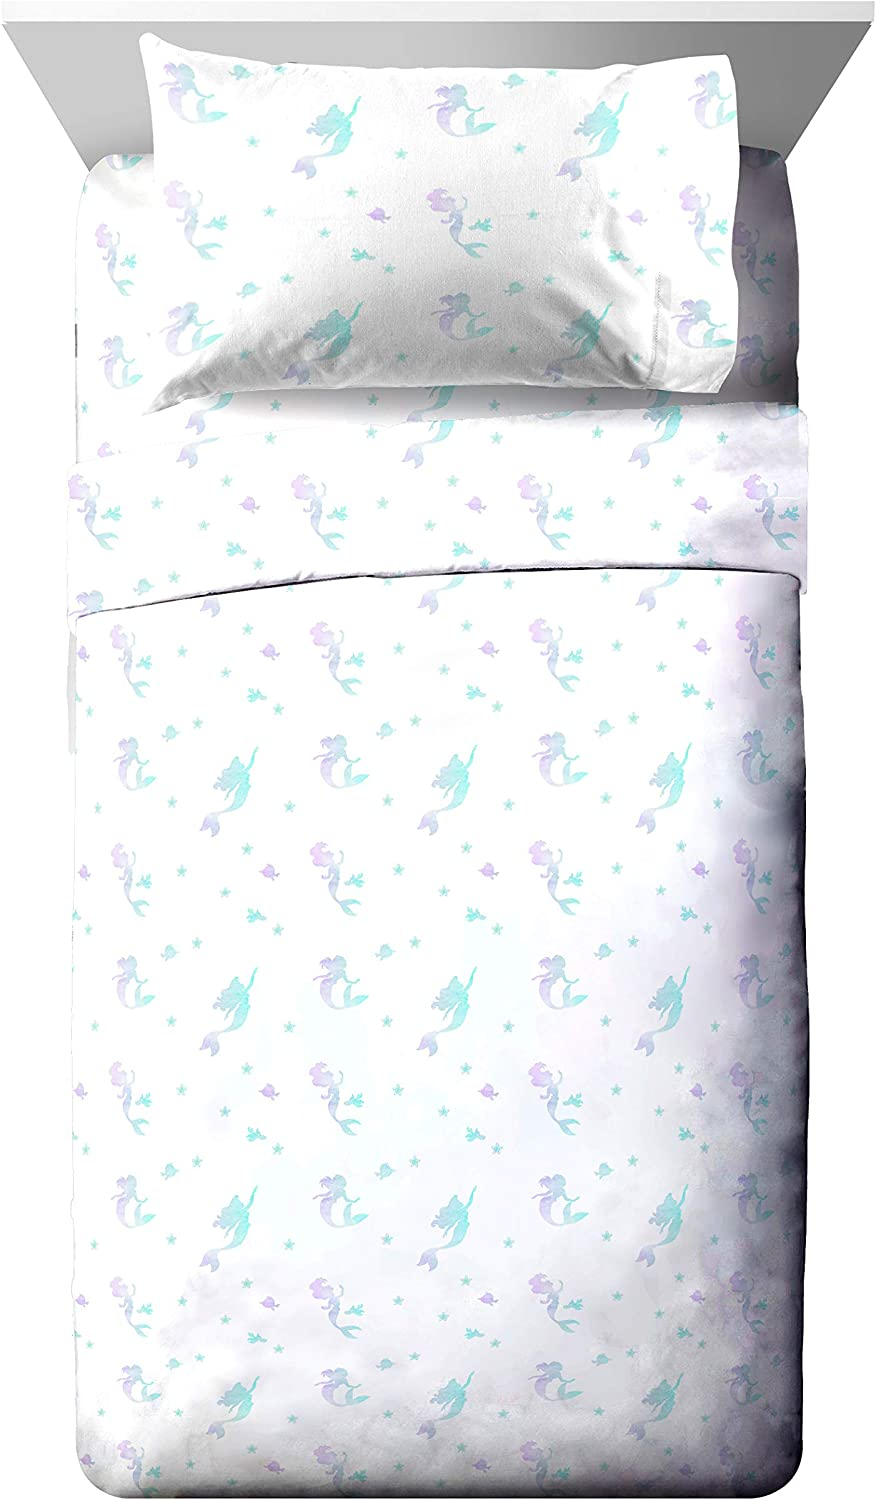 Jay Franco Disney Little Mermaid Make A Splash Twin Sheet Set - 3 Piece Set Super Soft and Cozy Kid's Bedding Features Ariel - Fade Resistant Microfiber Sheets (Official Disney Product)